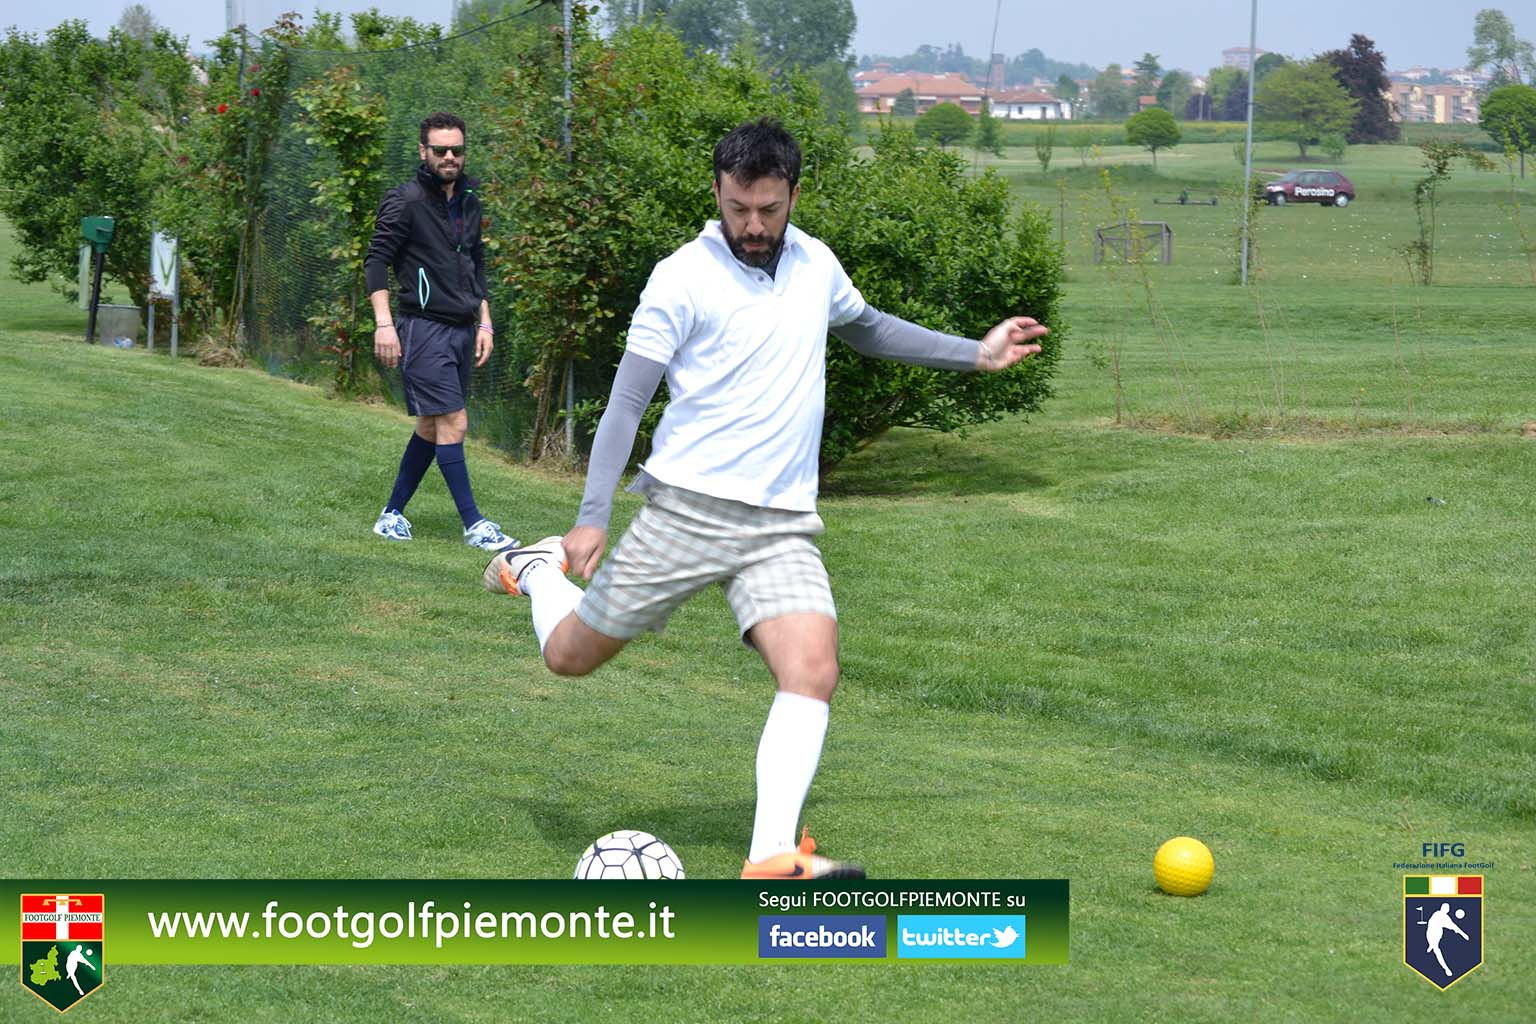 FOTO 9 Regions' Cup Footgolf Piemonte 2016 Golf Città di Asti (At) 30apr16-38